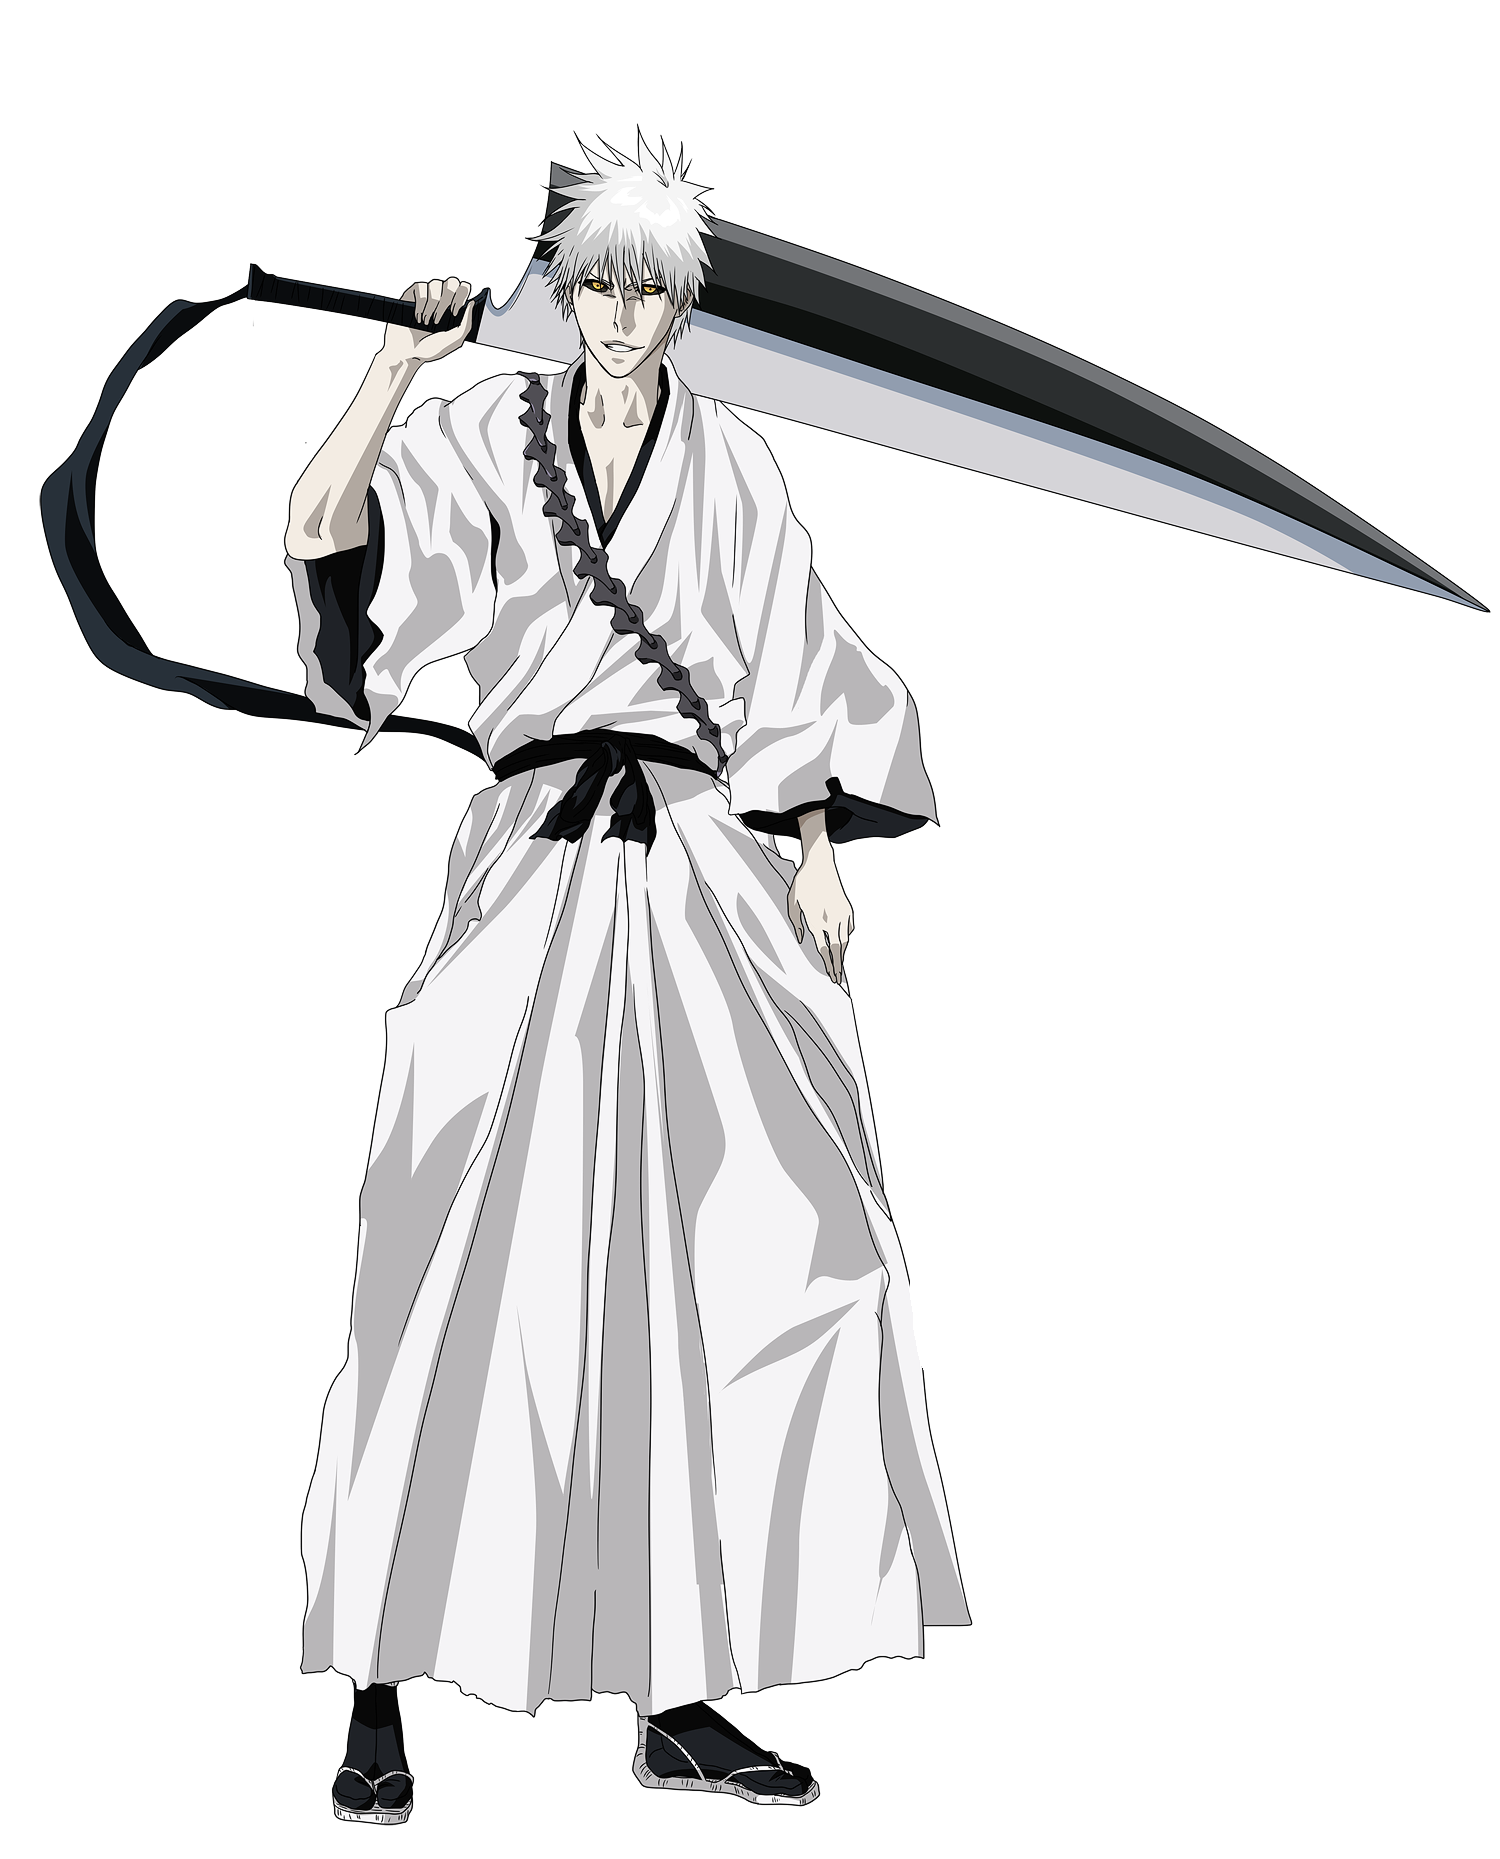 Zangetsu | VS Battles Wiki | FANDOM powered by Wikia